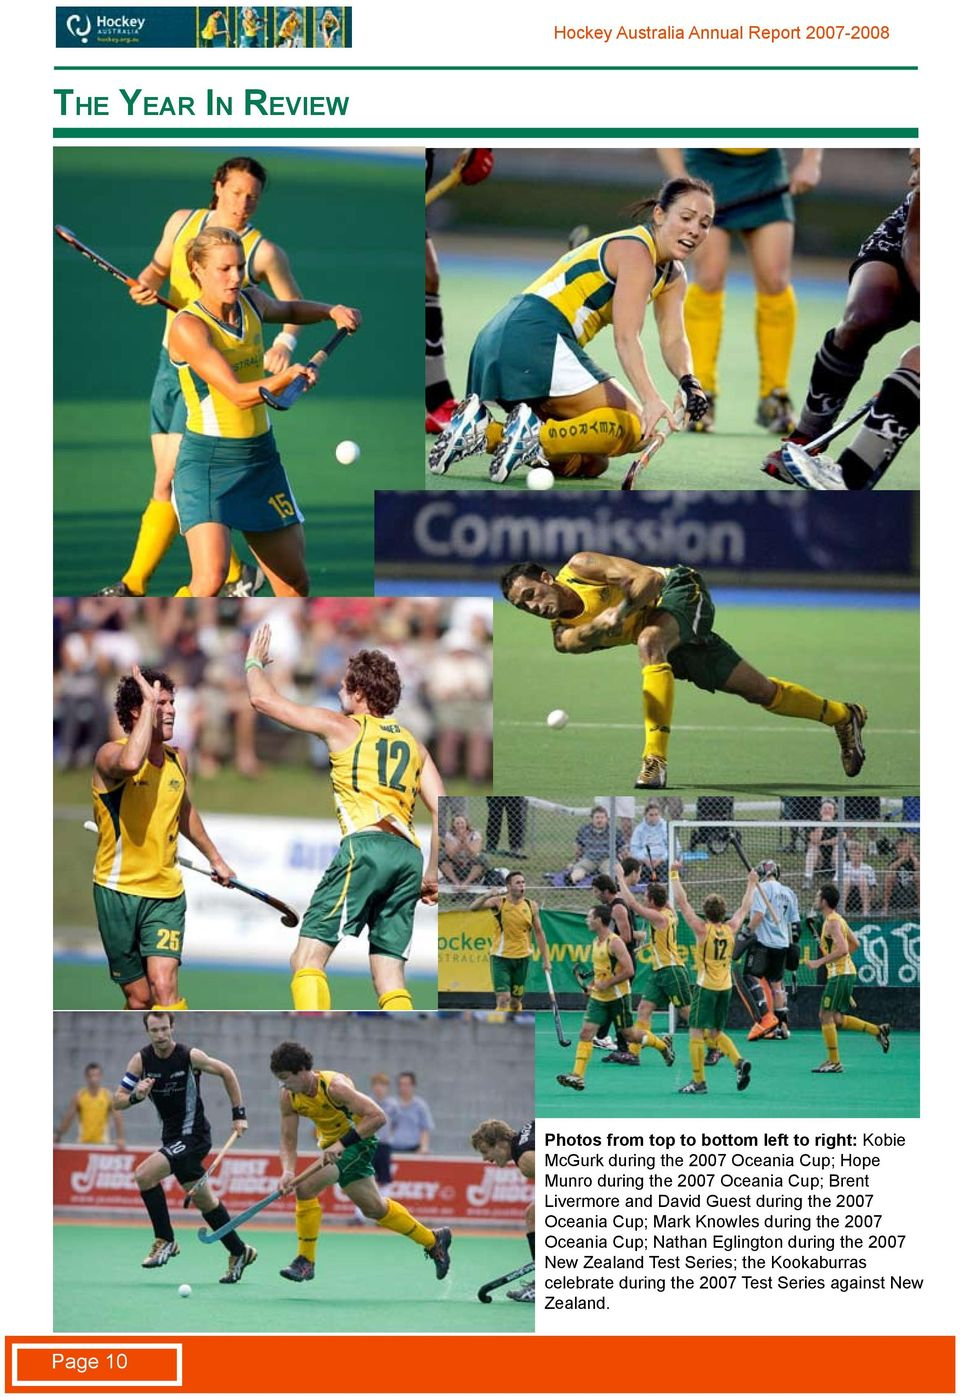 Oceania Cup; Mark Knowles during the 2007 Oceania Cup; Nathan Eglington during the 2007 New